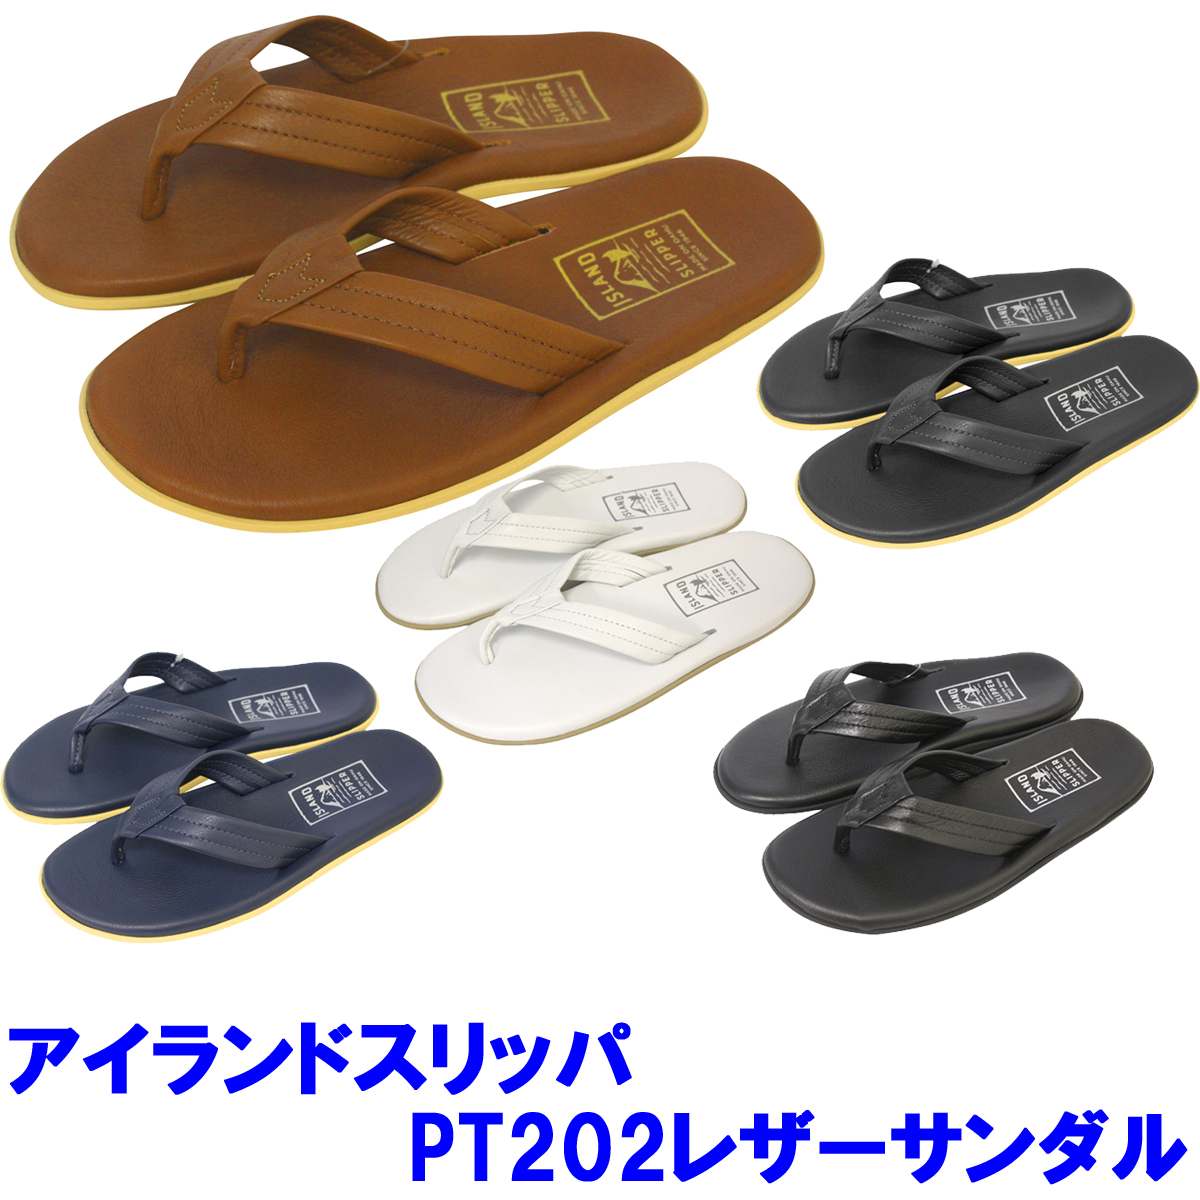 Island Slipper Reviews | Read Customer Service Reviews of ...